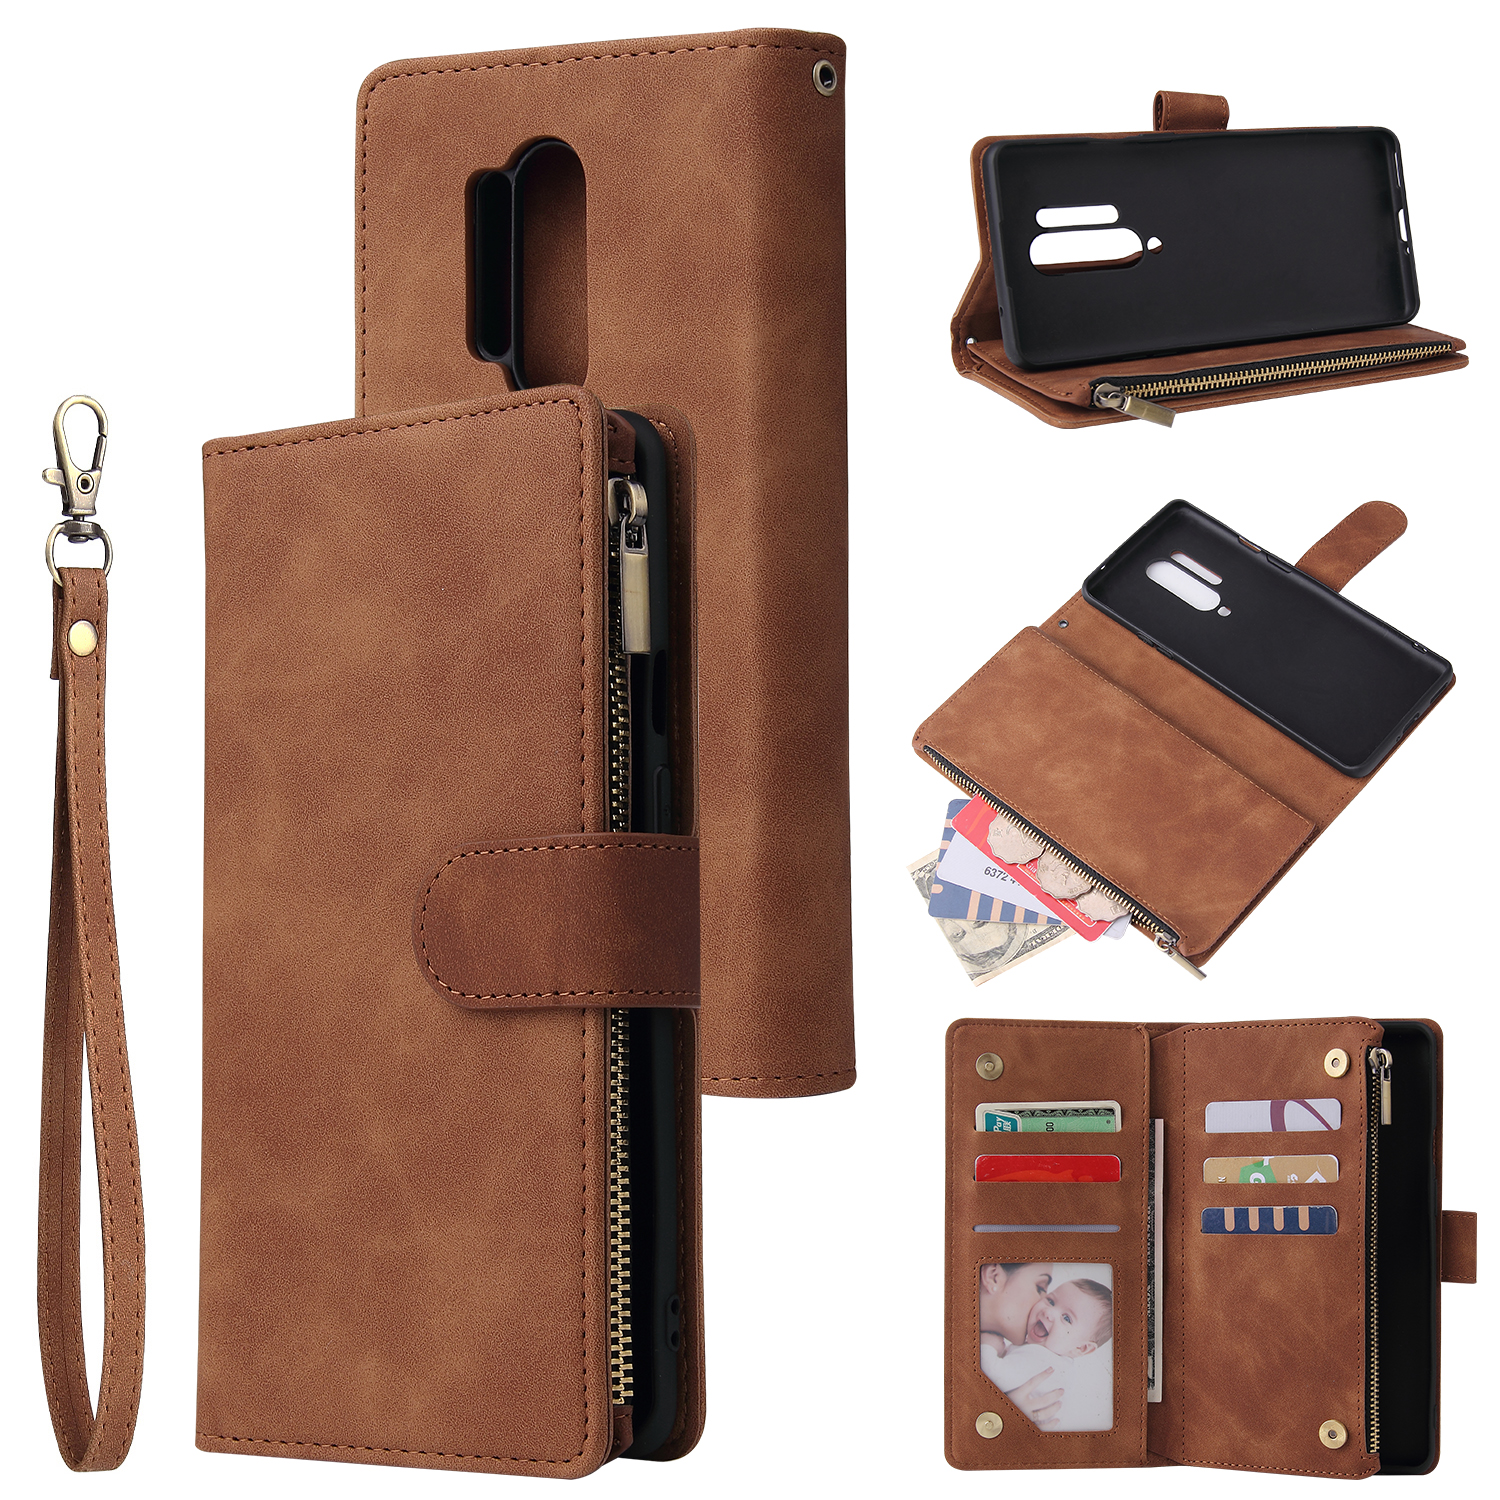 For One plus 8 pro Mobile Phone Case Smartphone Shell Wallet Design Zipper Closure Overall Protection Cellphone Cover  4 brown